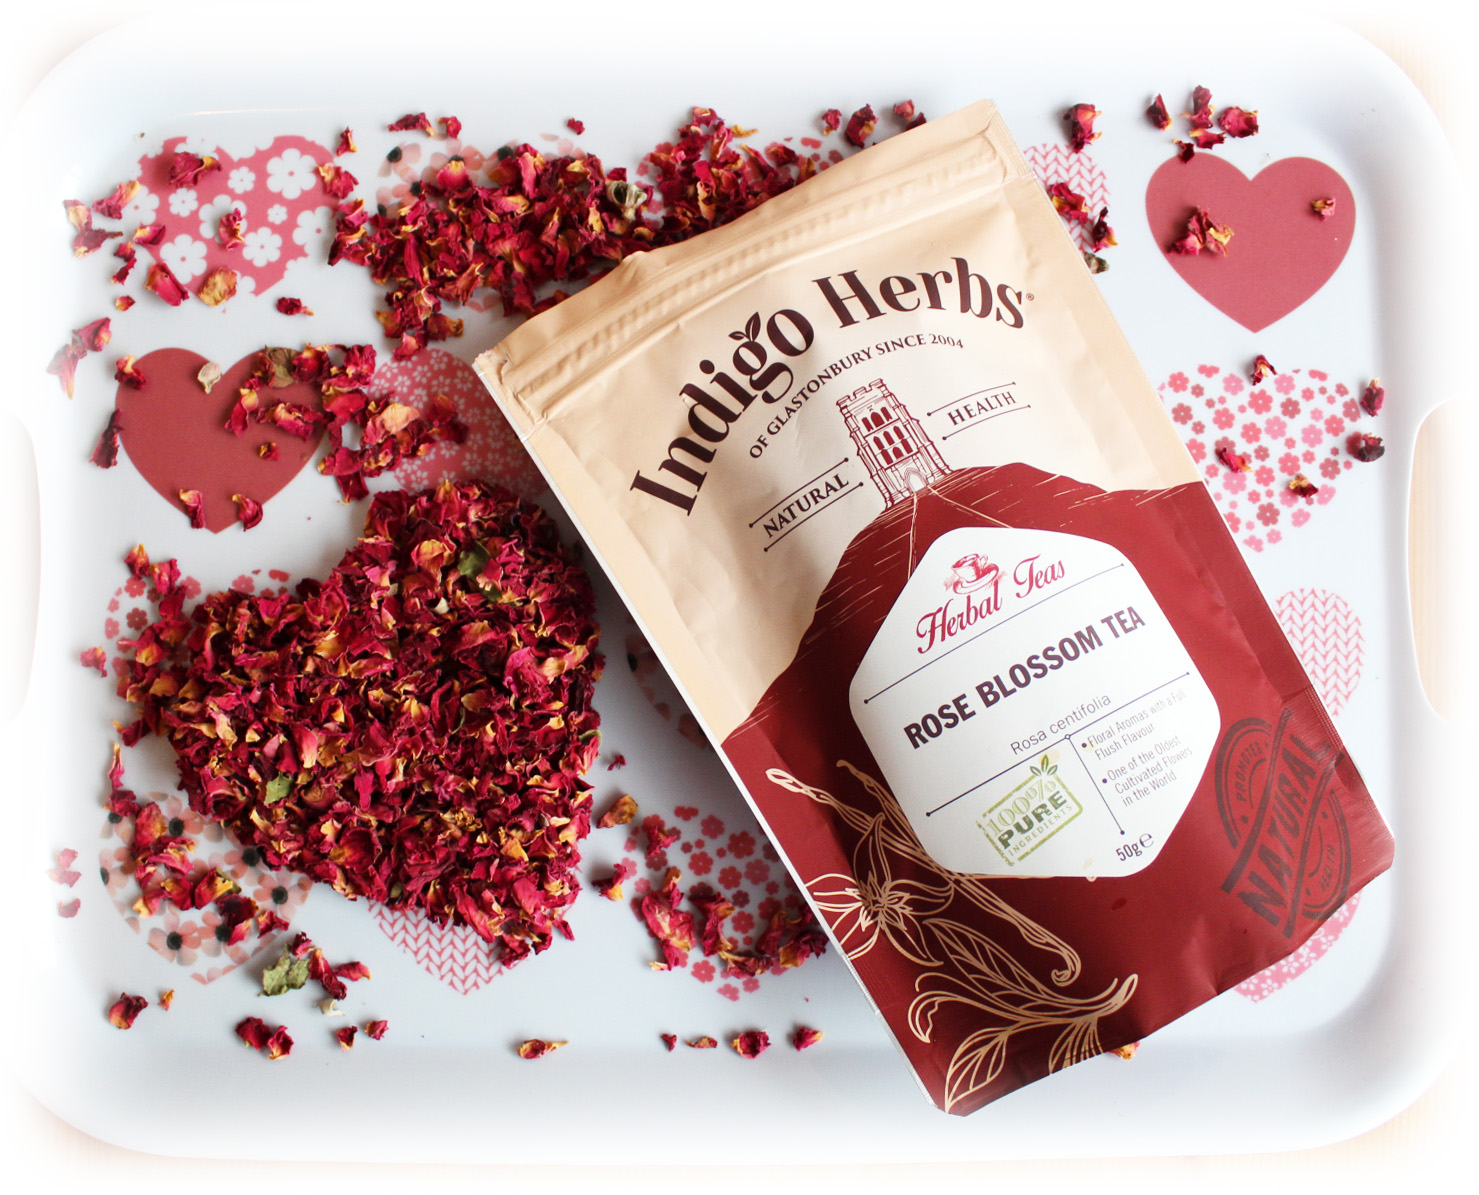 Happy International Woman's Day with Indigo Herbs Rose Blossom Tea | Review & Giveaway